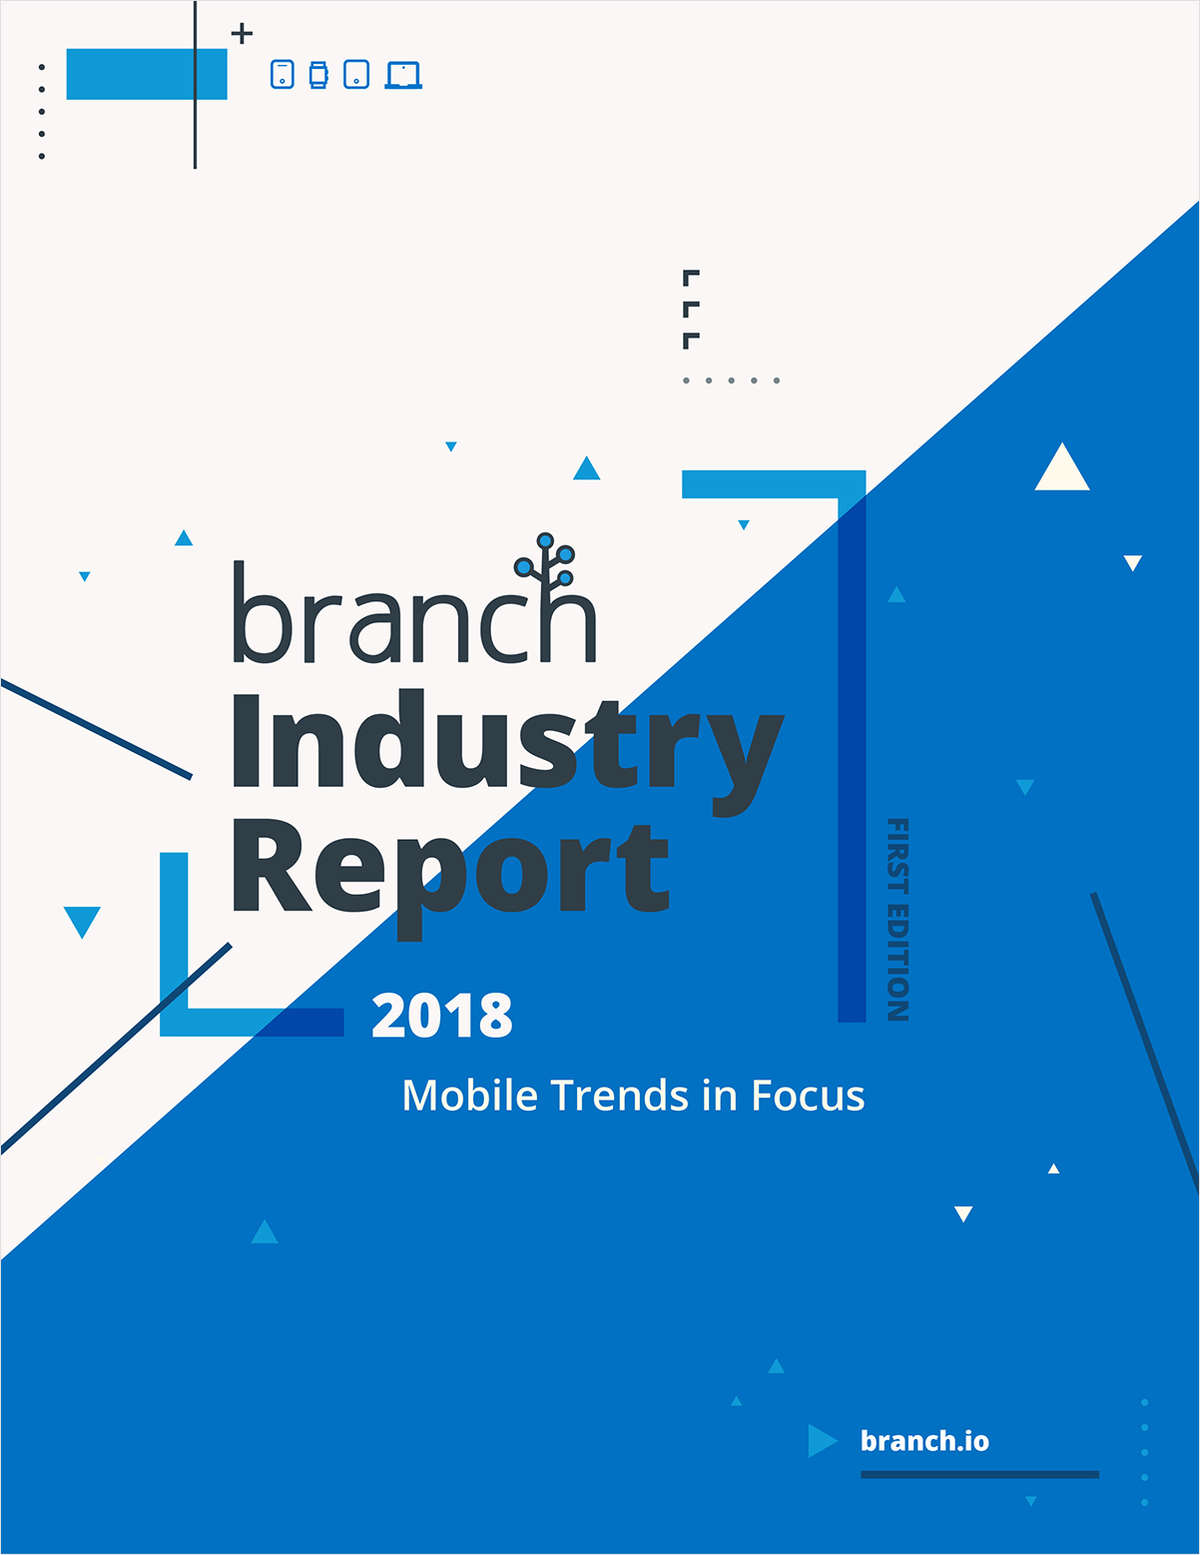 The Branch Industry Report: Mobile Trends in Focus